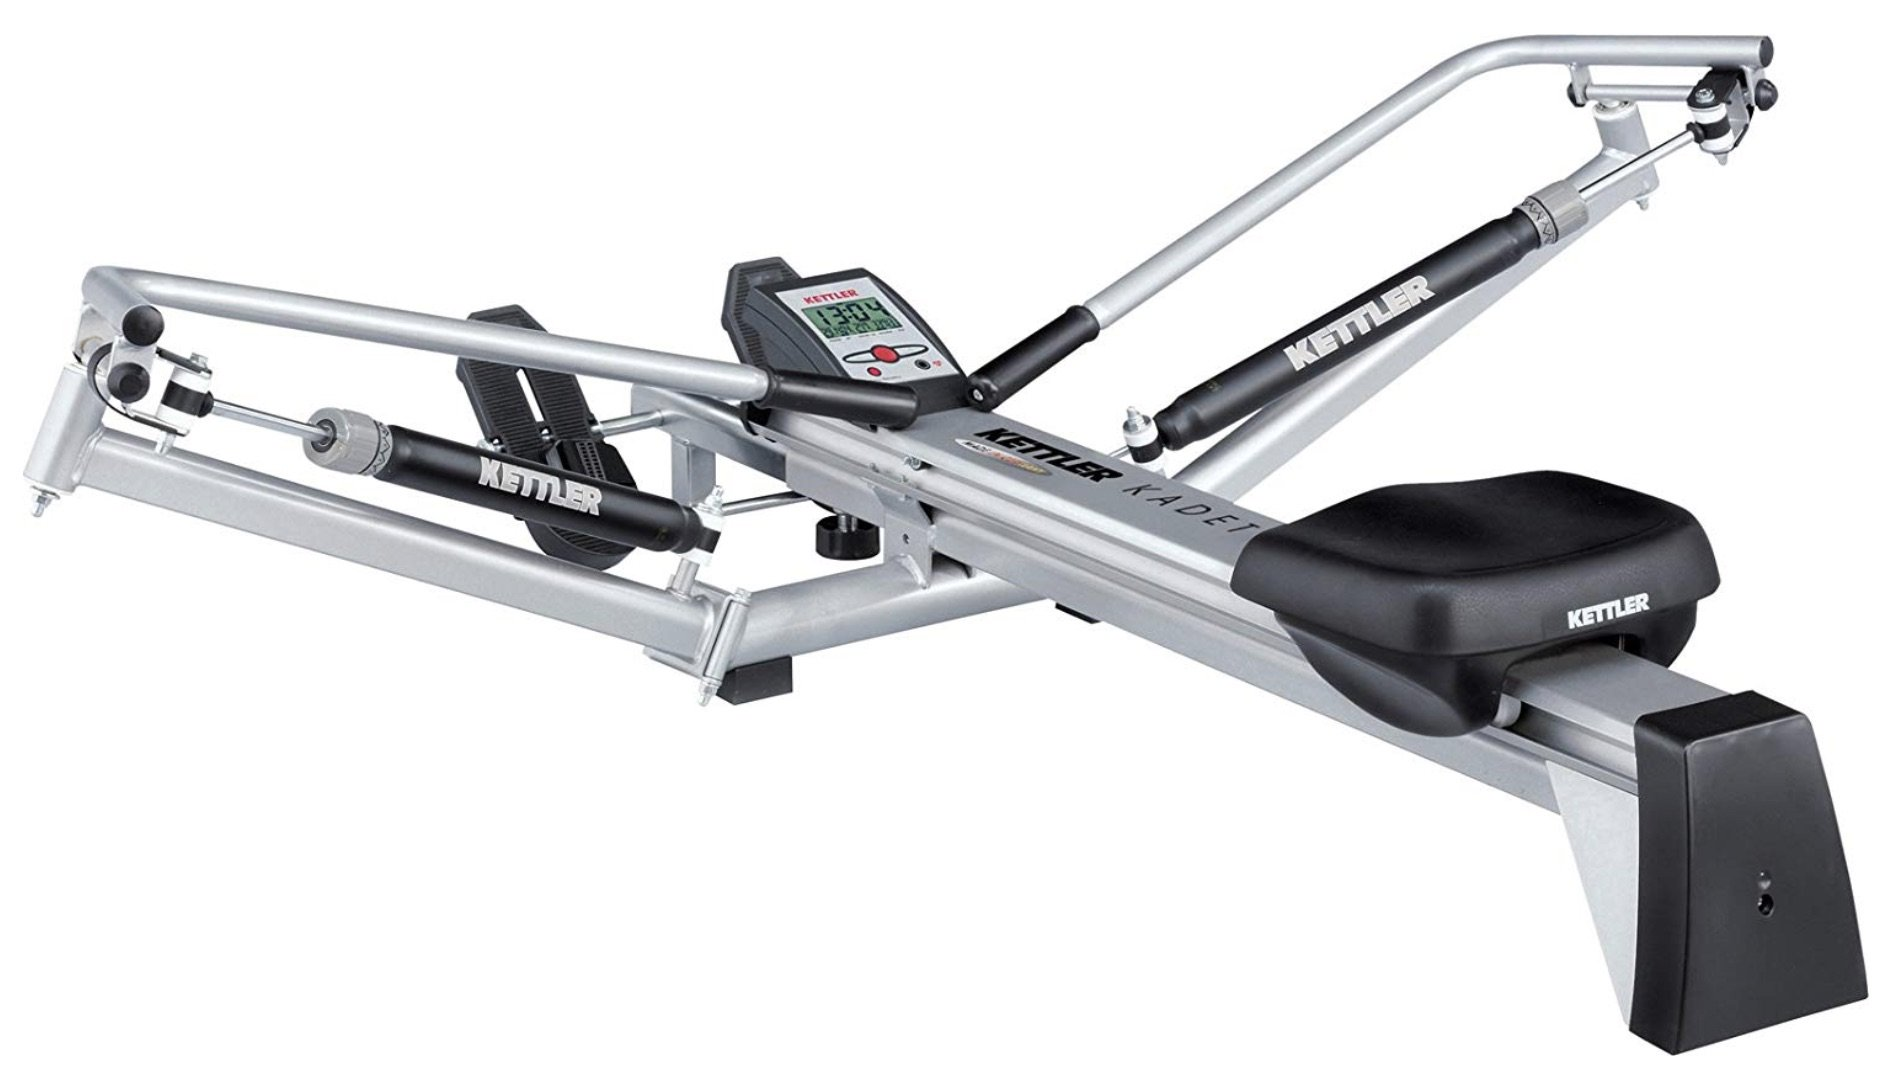 Kettler Kadett Rowing Machine Review